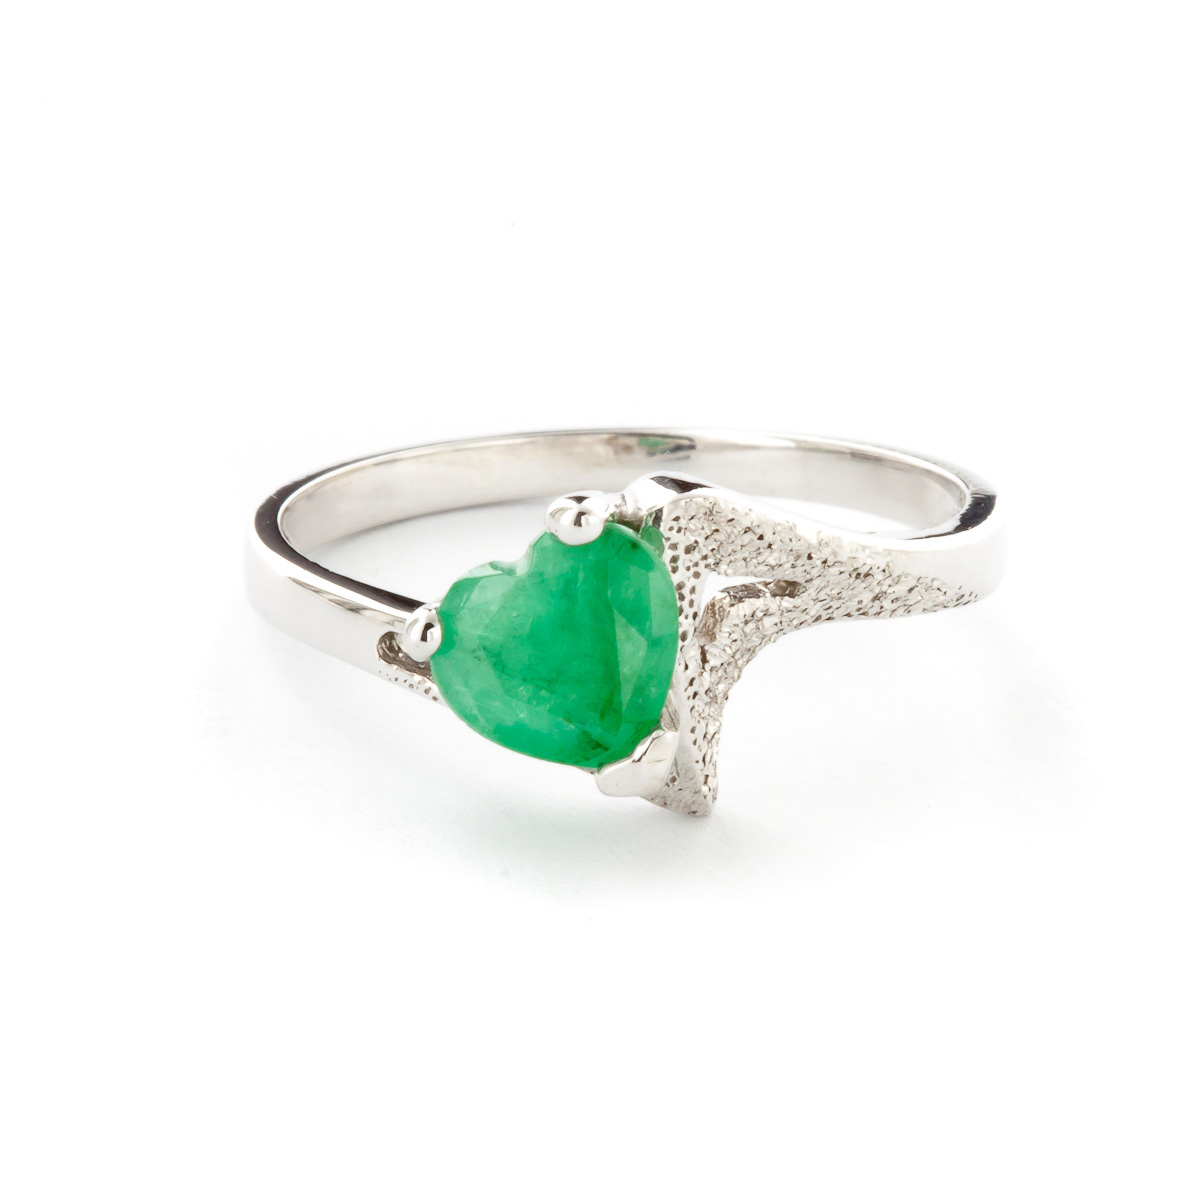 Emerald Devotion Heart Ring 1.0ct in 9ct White Gold